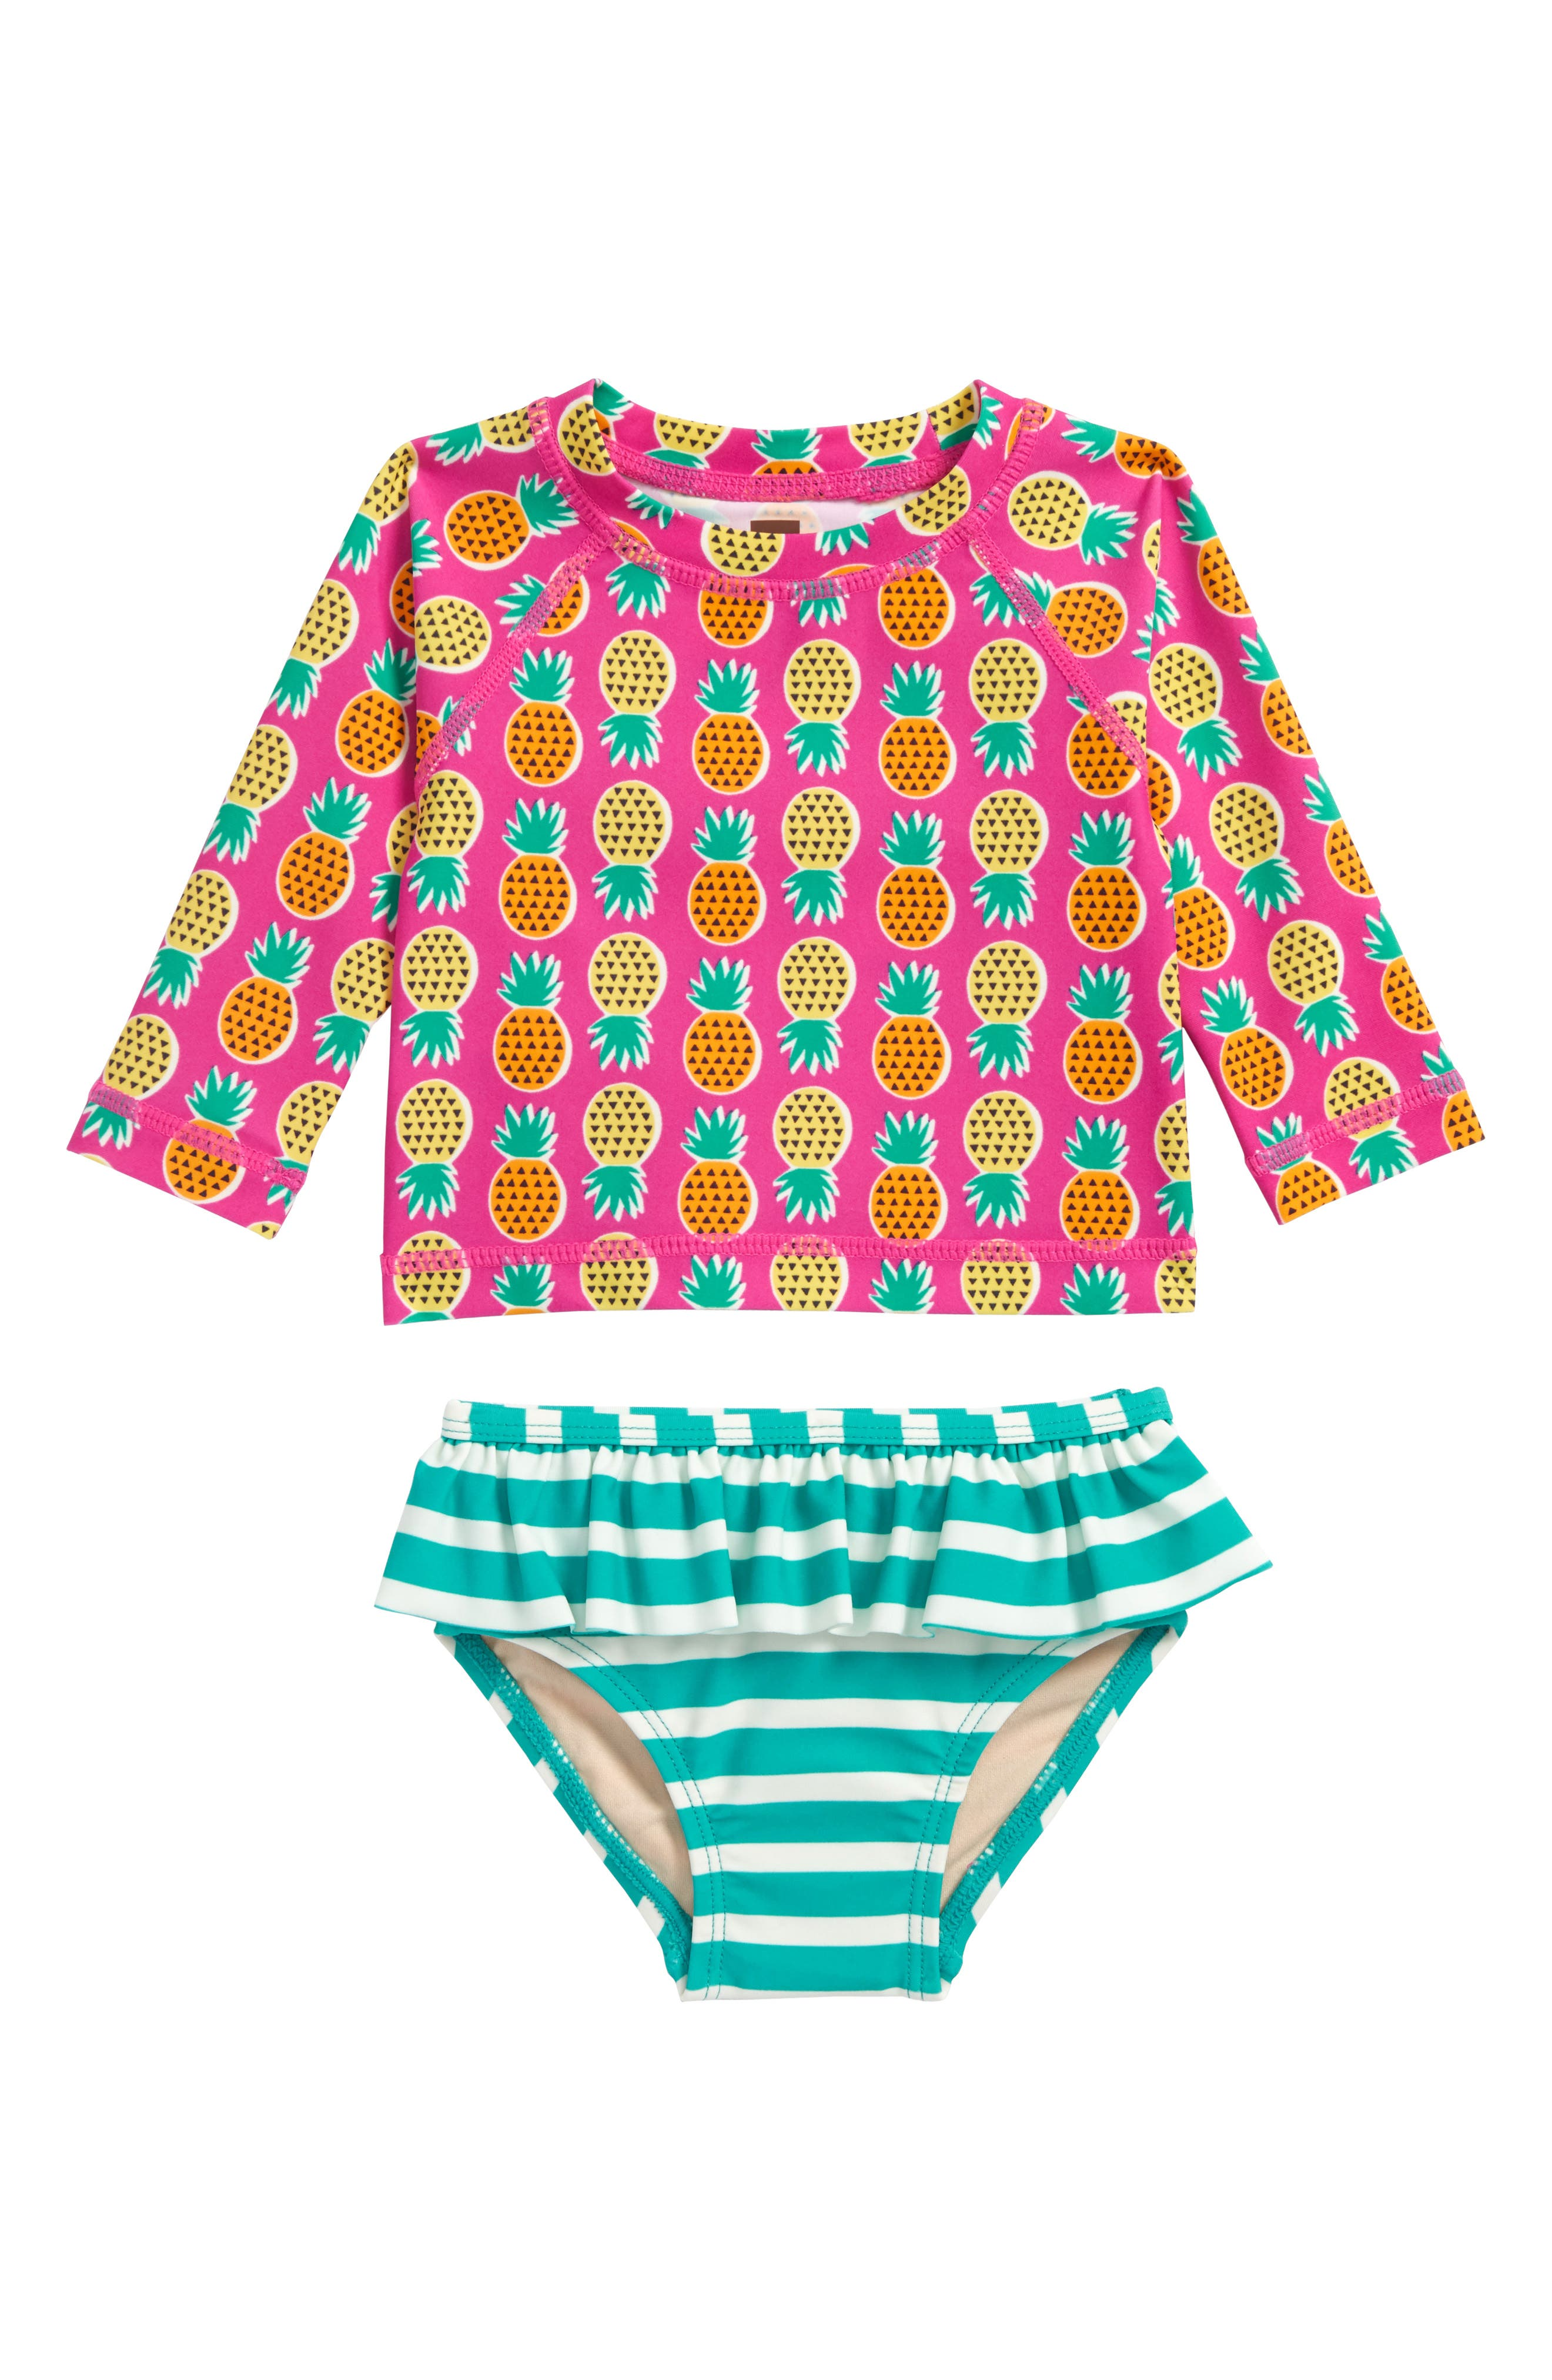 Mixed Print Two-Piece Rashguard Swimsuit,                         Main,                         color, Tropical Pineapples